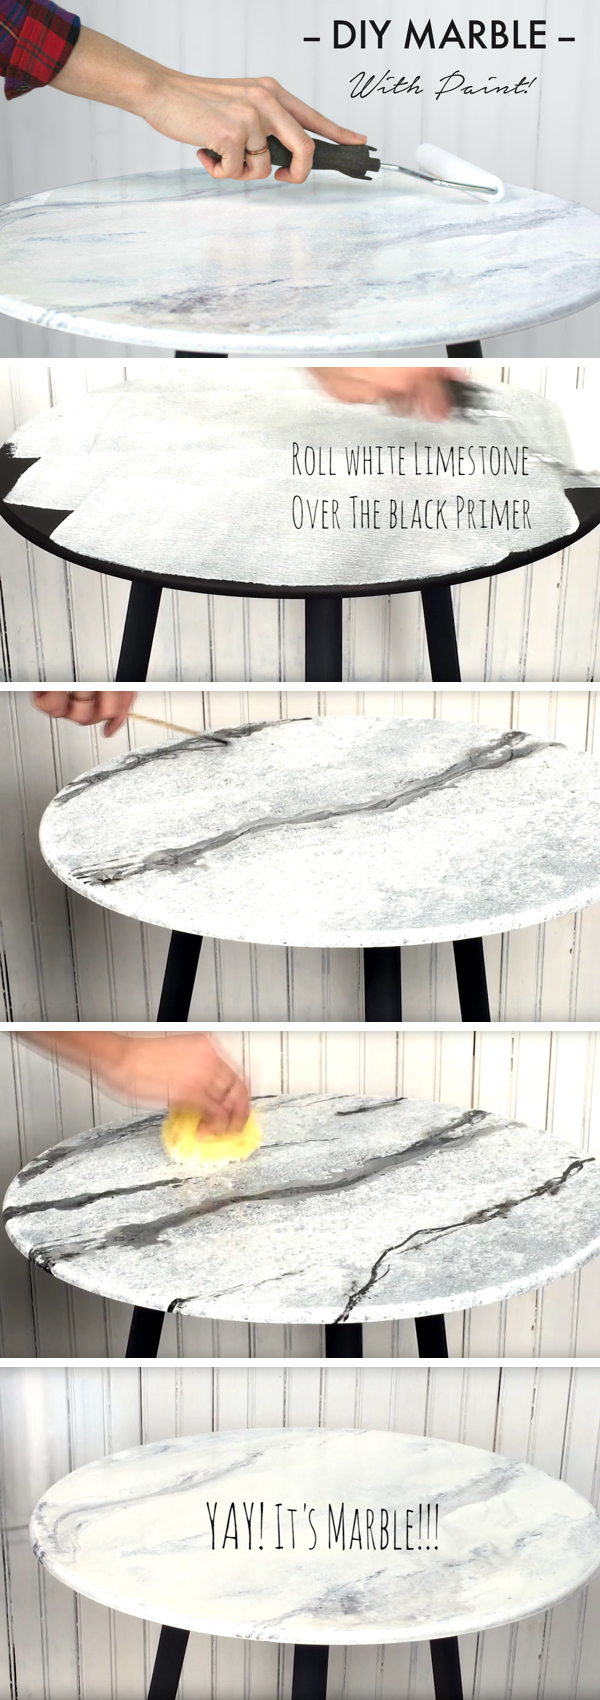 This Technique to Work Up DIY Marble with Giani is All About True Luxury!